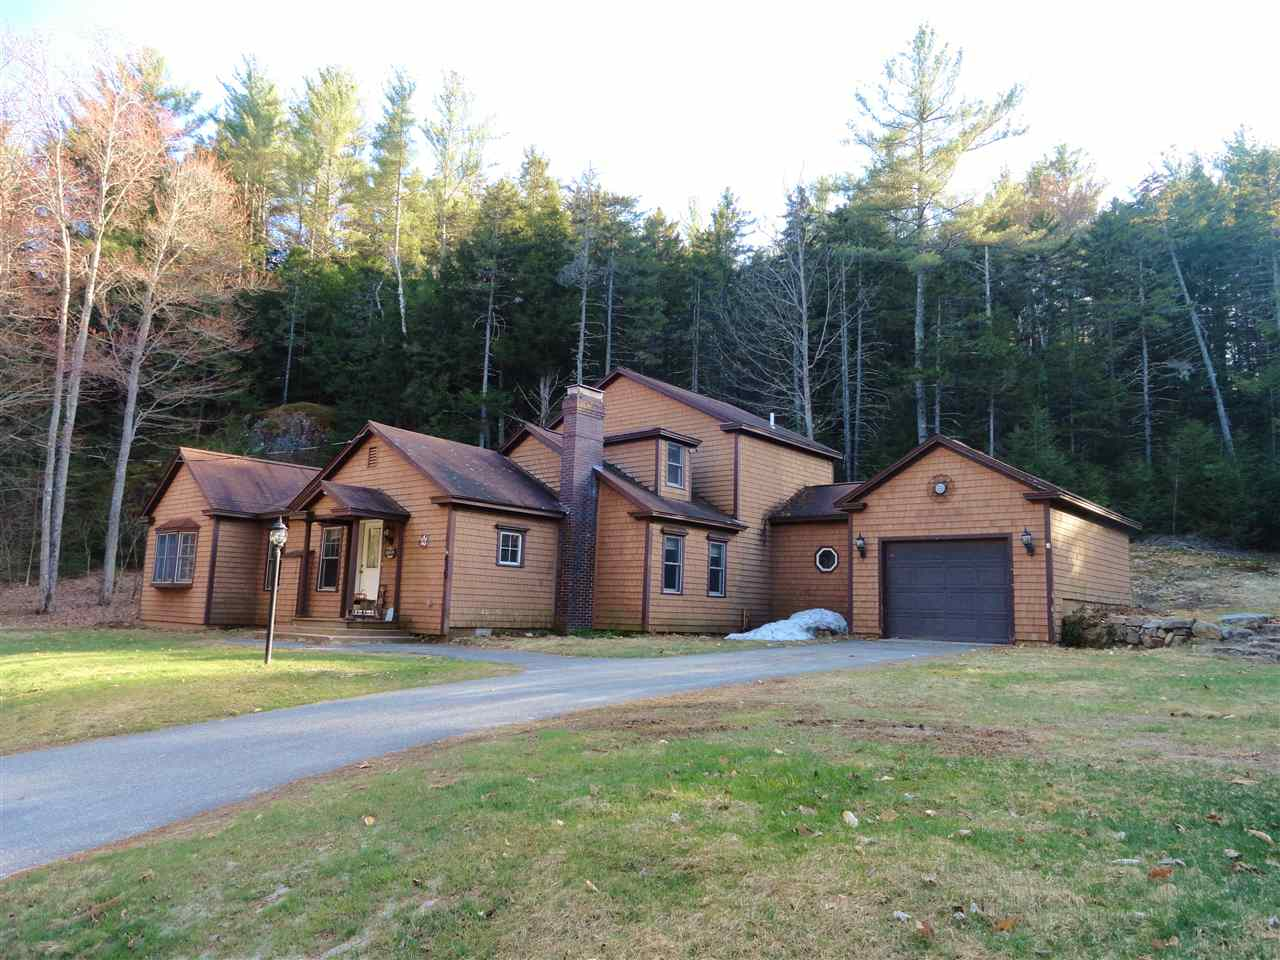 839 Old Route 25, Rumney, NH 03266